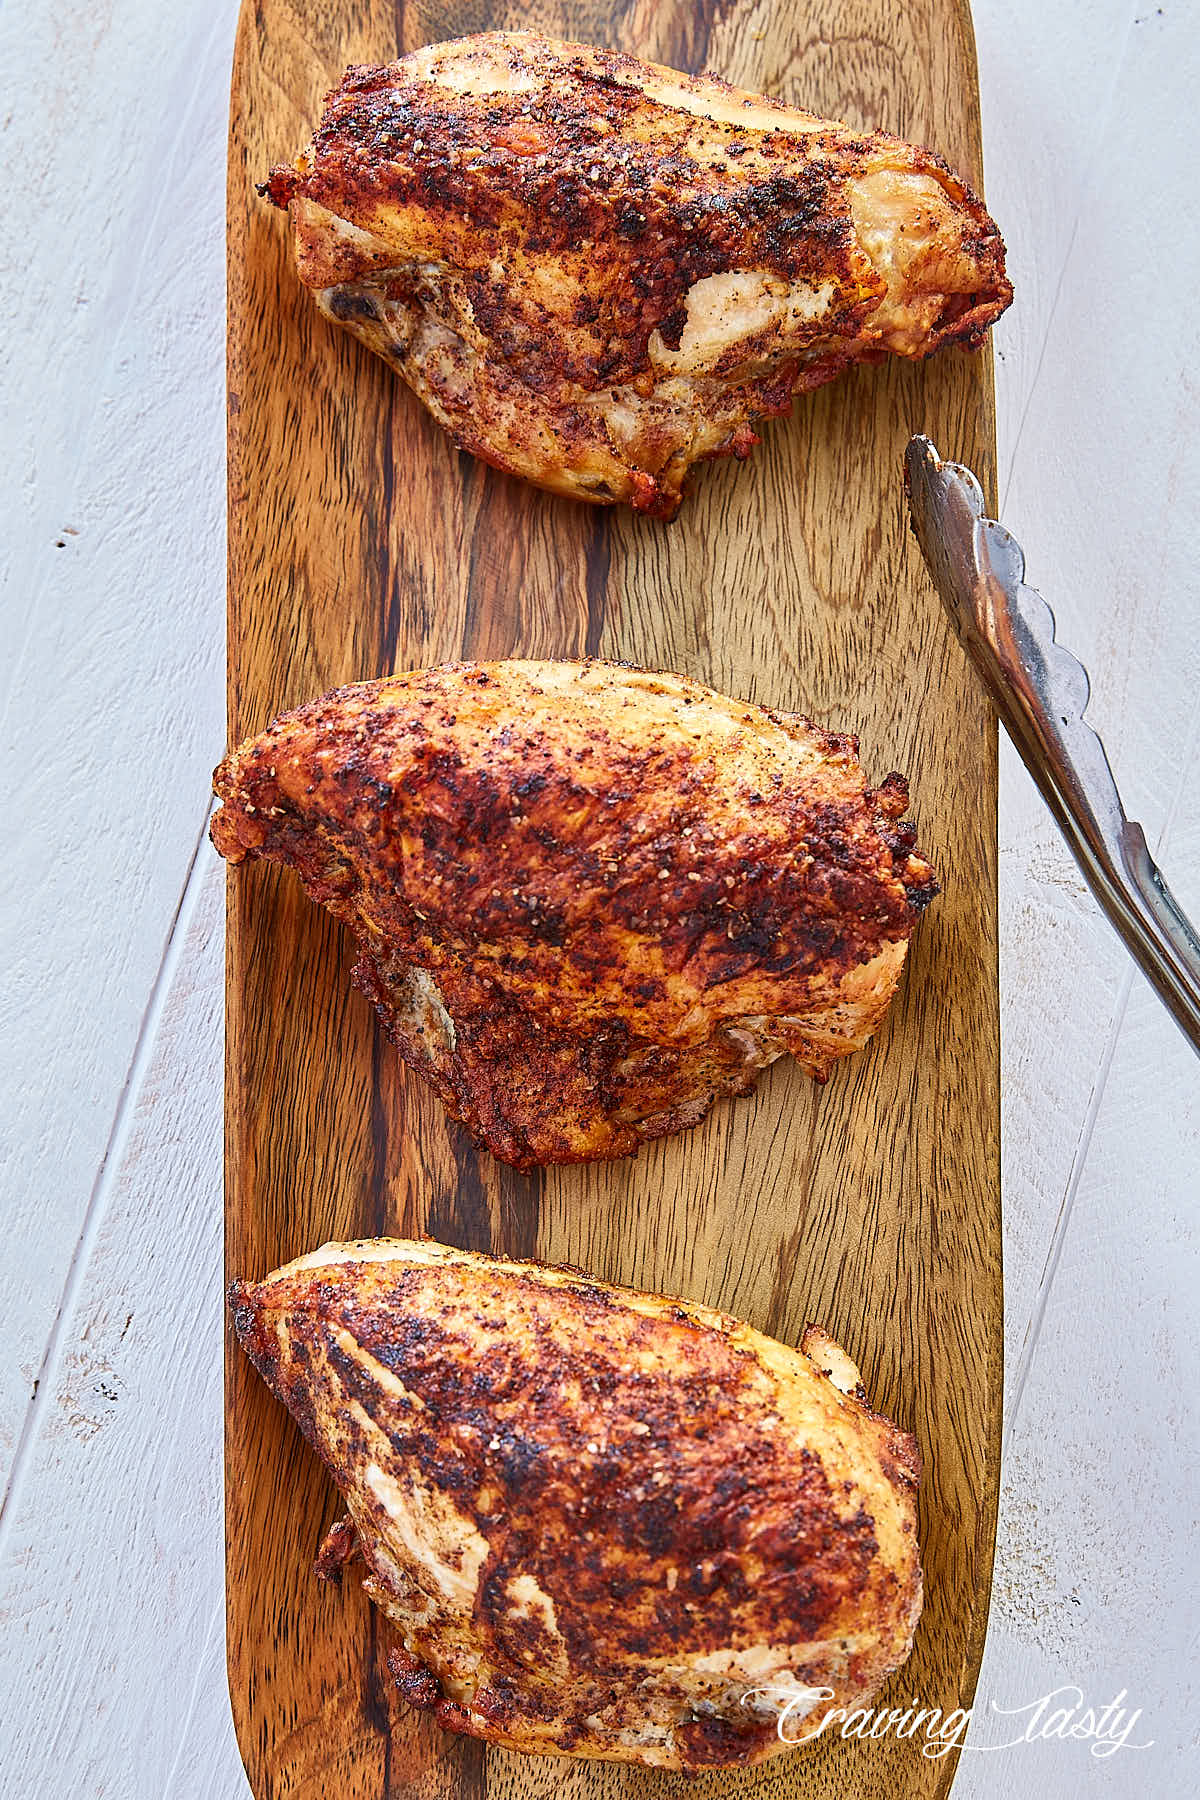 Top down view of three crispy-skinned, tender and juicy oven roasted bone-in chicken breasts on a wooden serving platter.